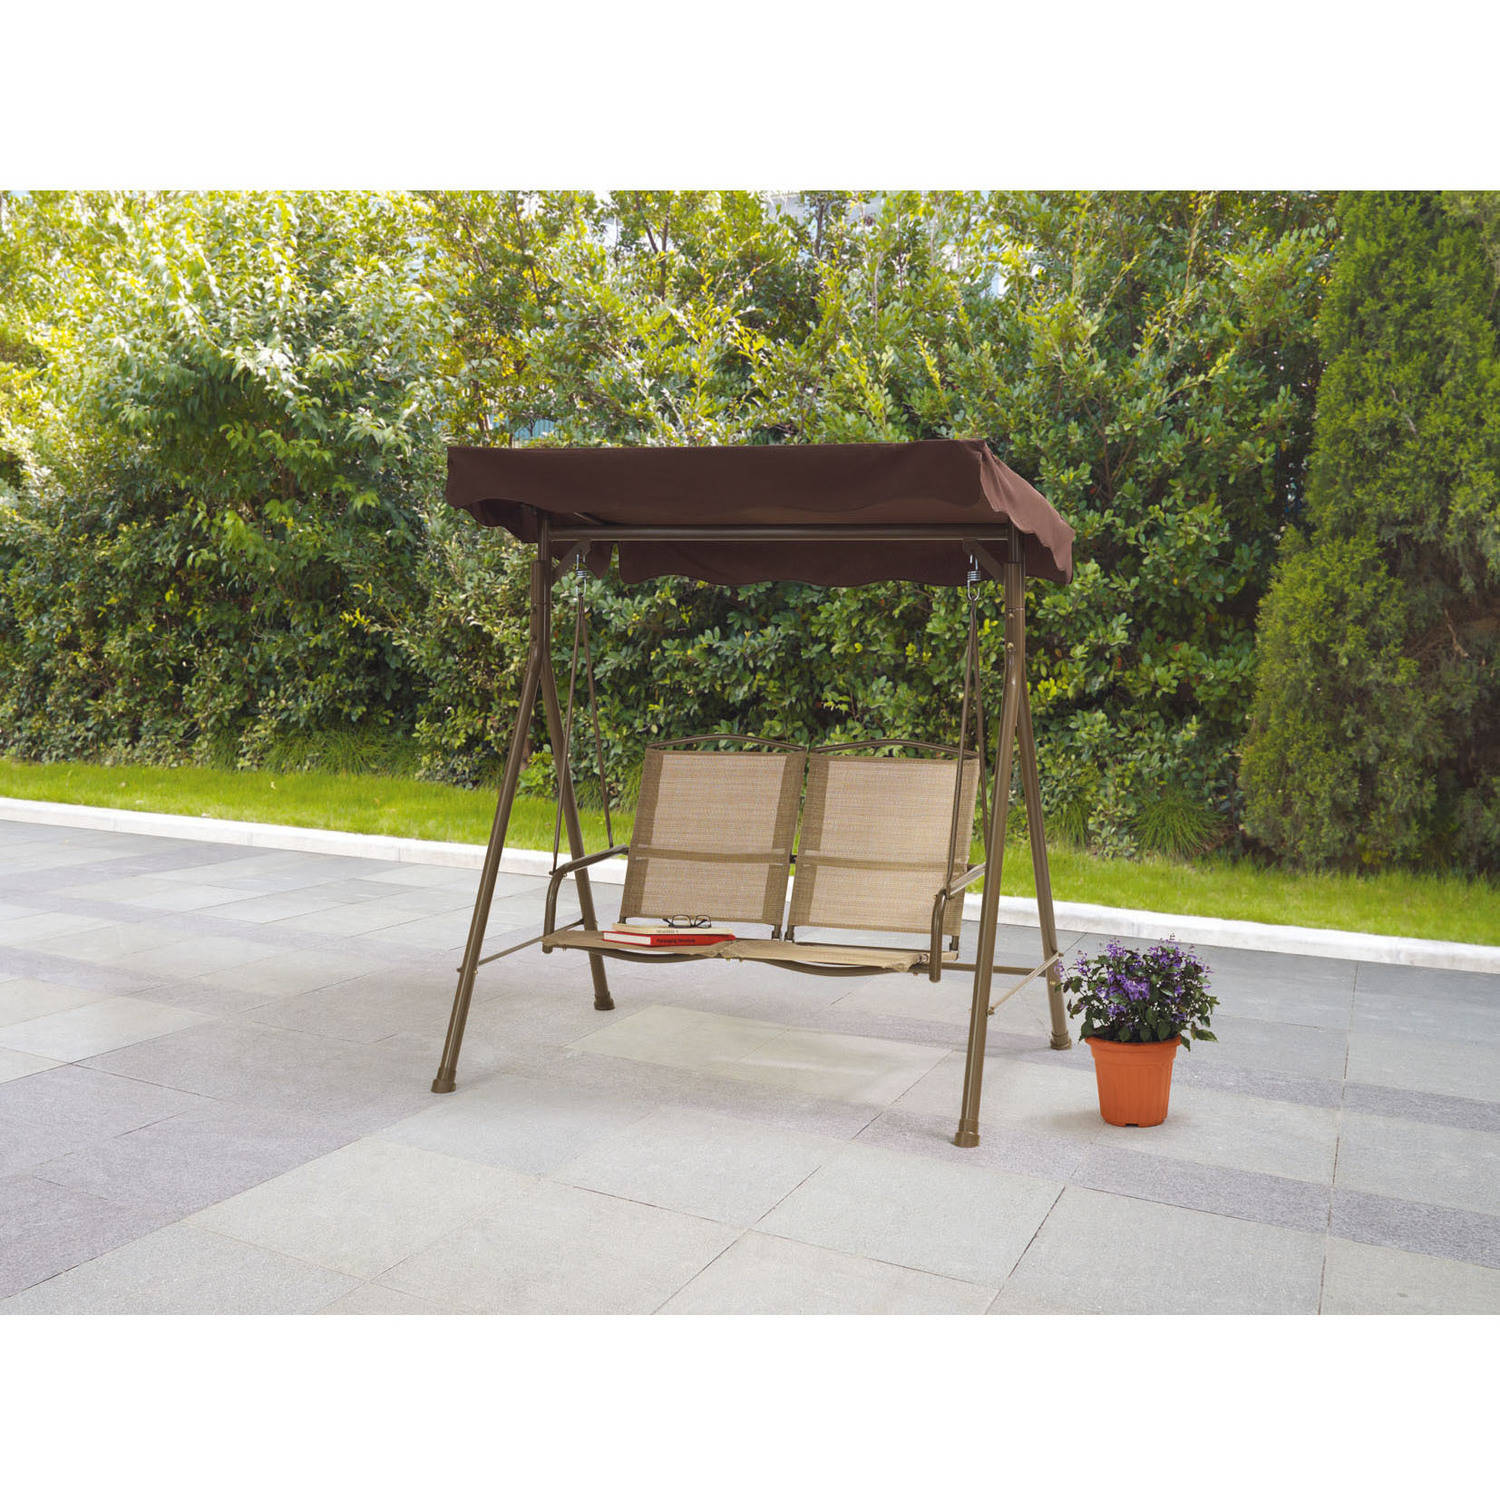 Mainstays Sand Dune 2-Seat Sling Porch Swing with Canopy